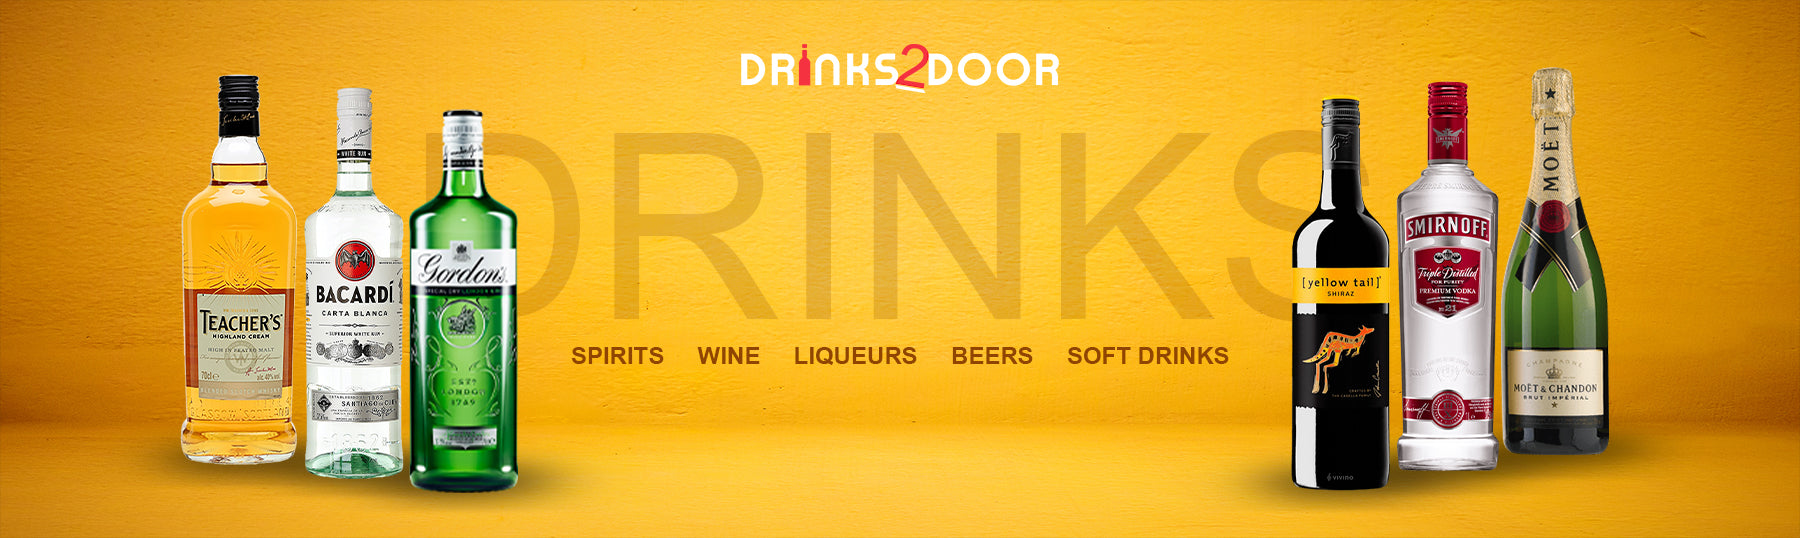 drinks2door